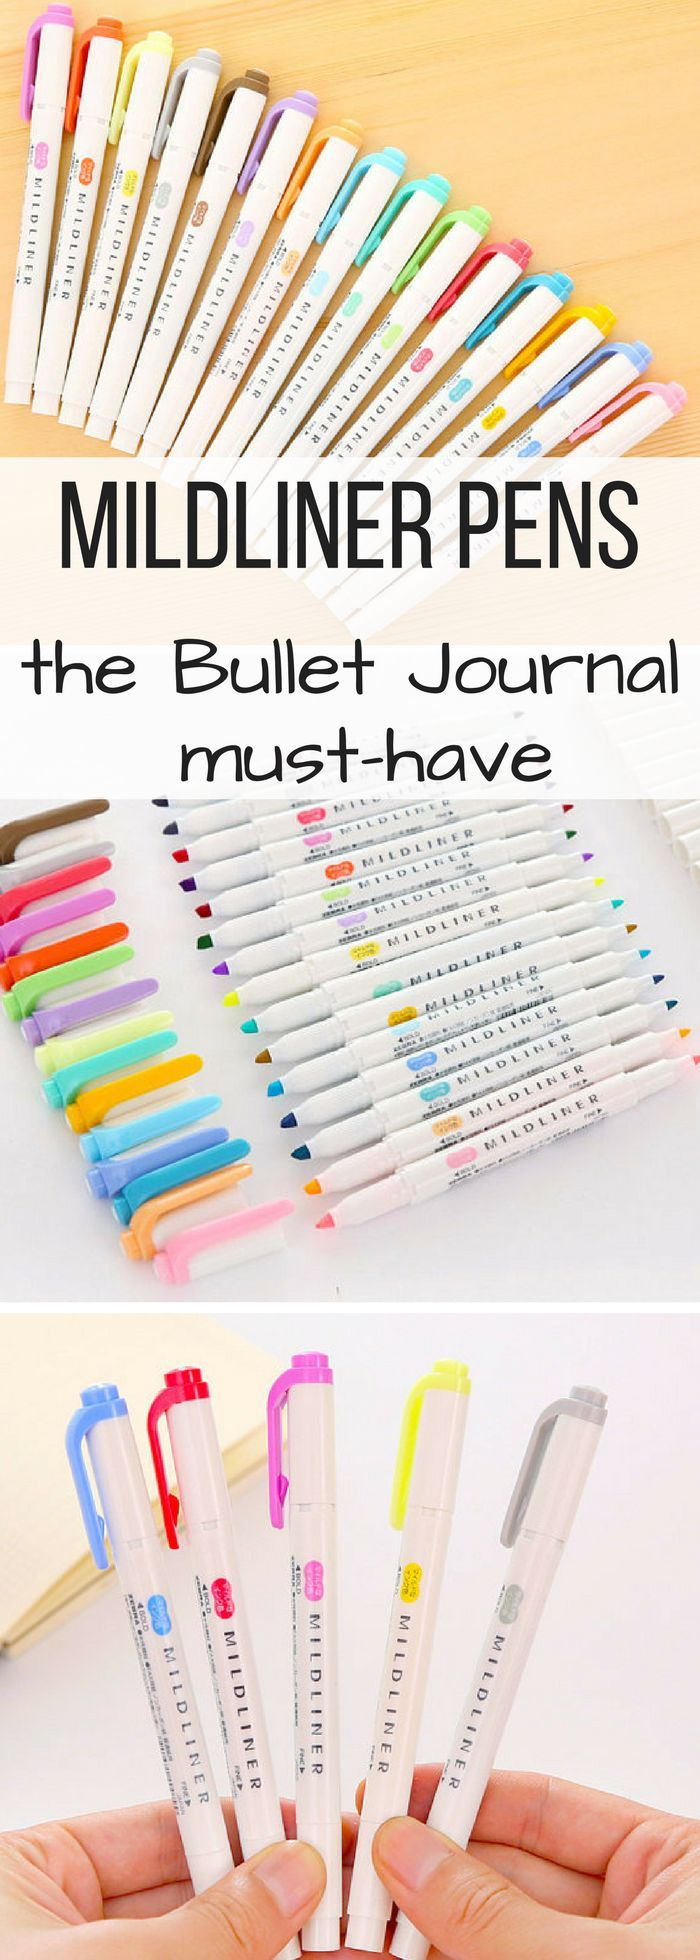 Mildliner Marker Pen Sets From Zebra In 15 Colors These Stabilo Boss Pink Set 10 Shrink Pens Have Blown Up The Bullet Journal Home Office Planners Stationery Favs